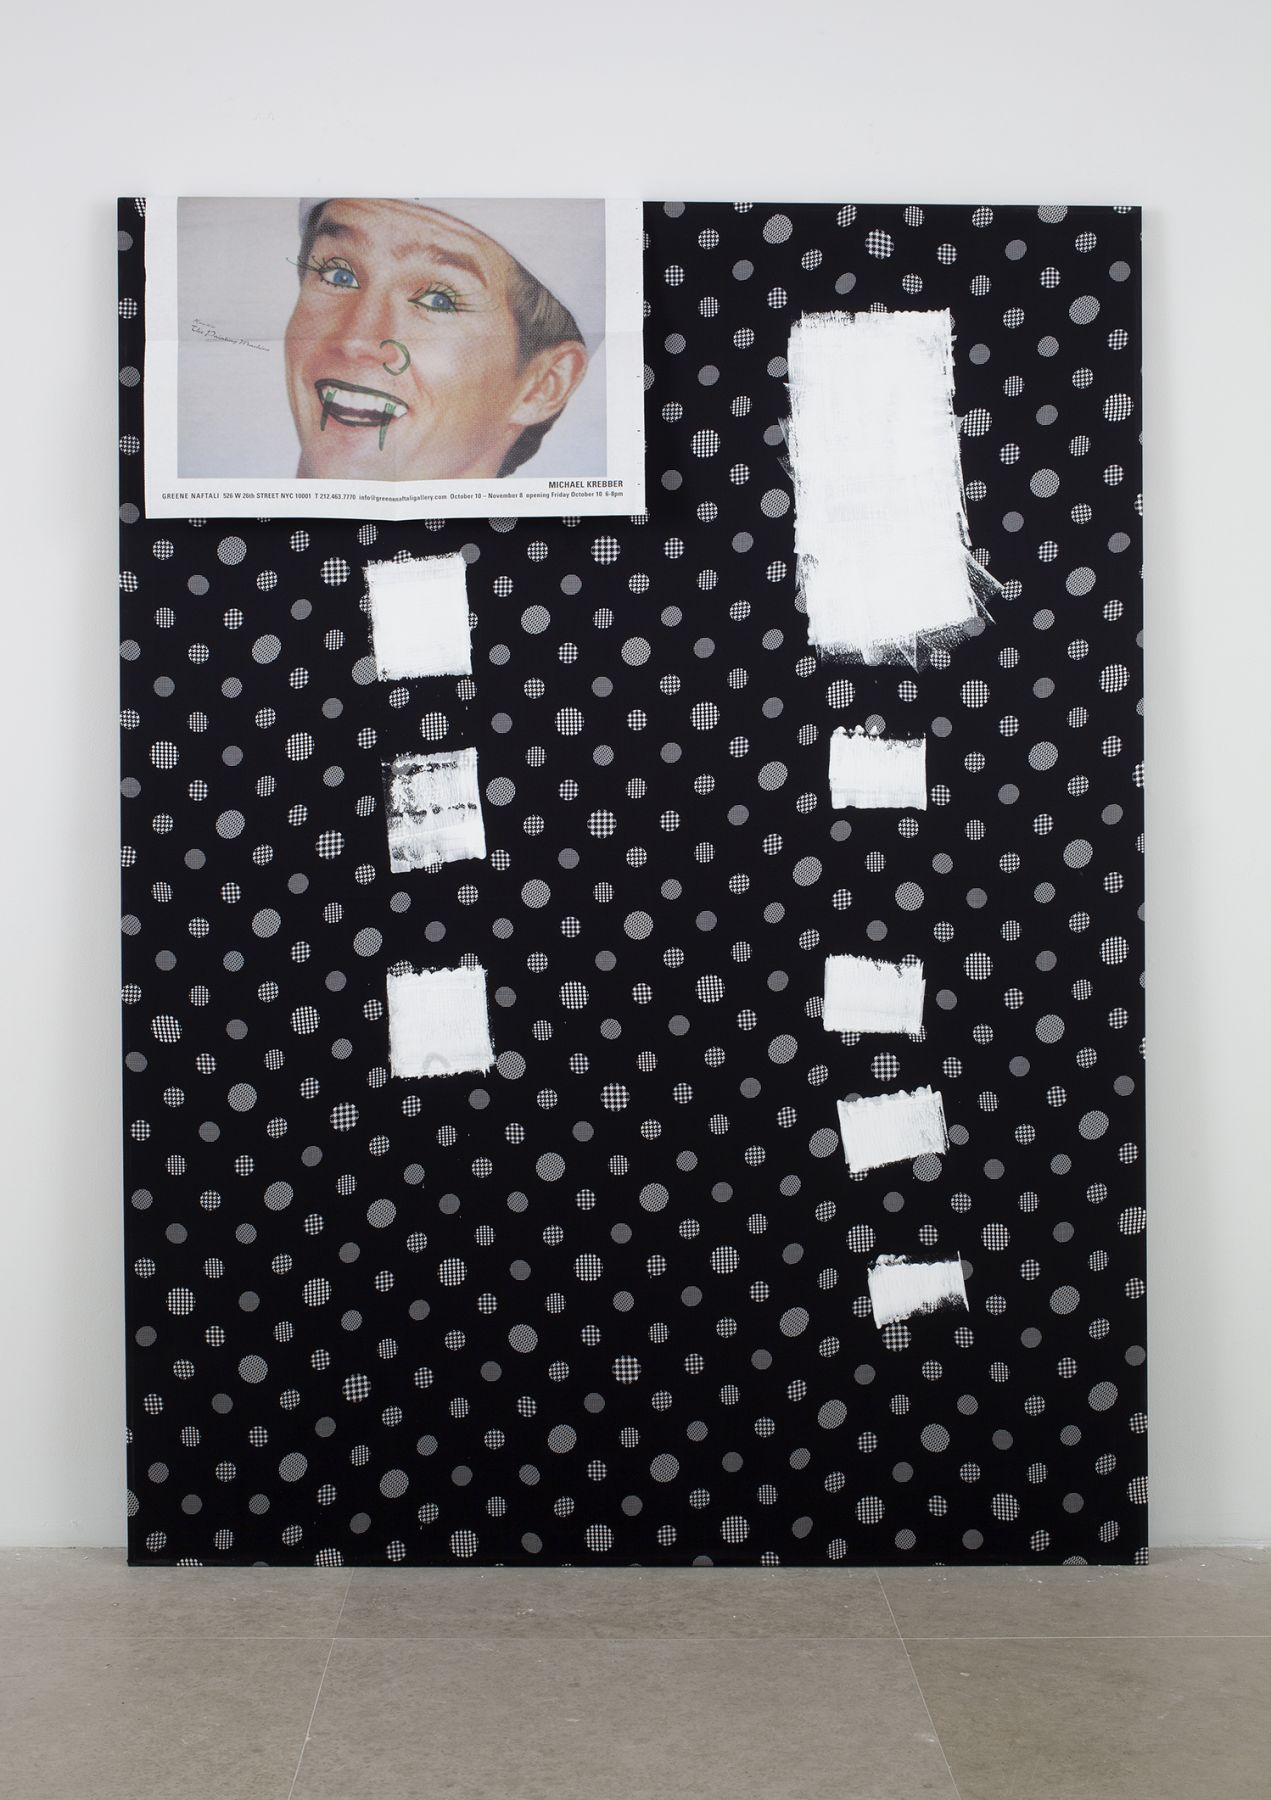 The Other Day, 2003,  Acrylic and paper on fabric,  60 x 44 inches